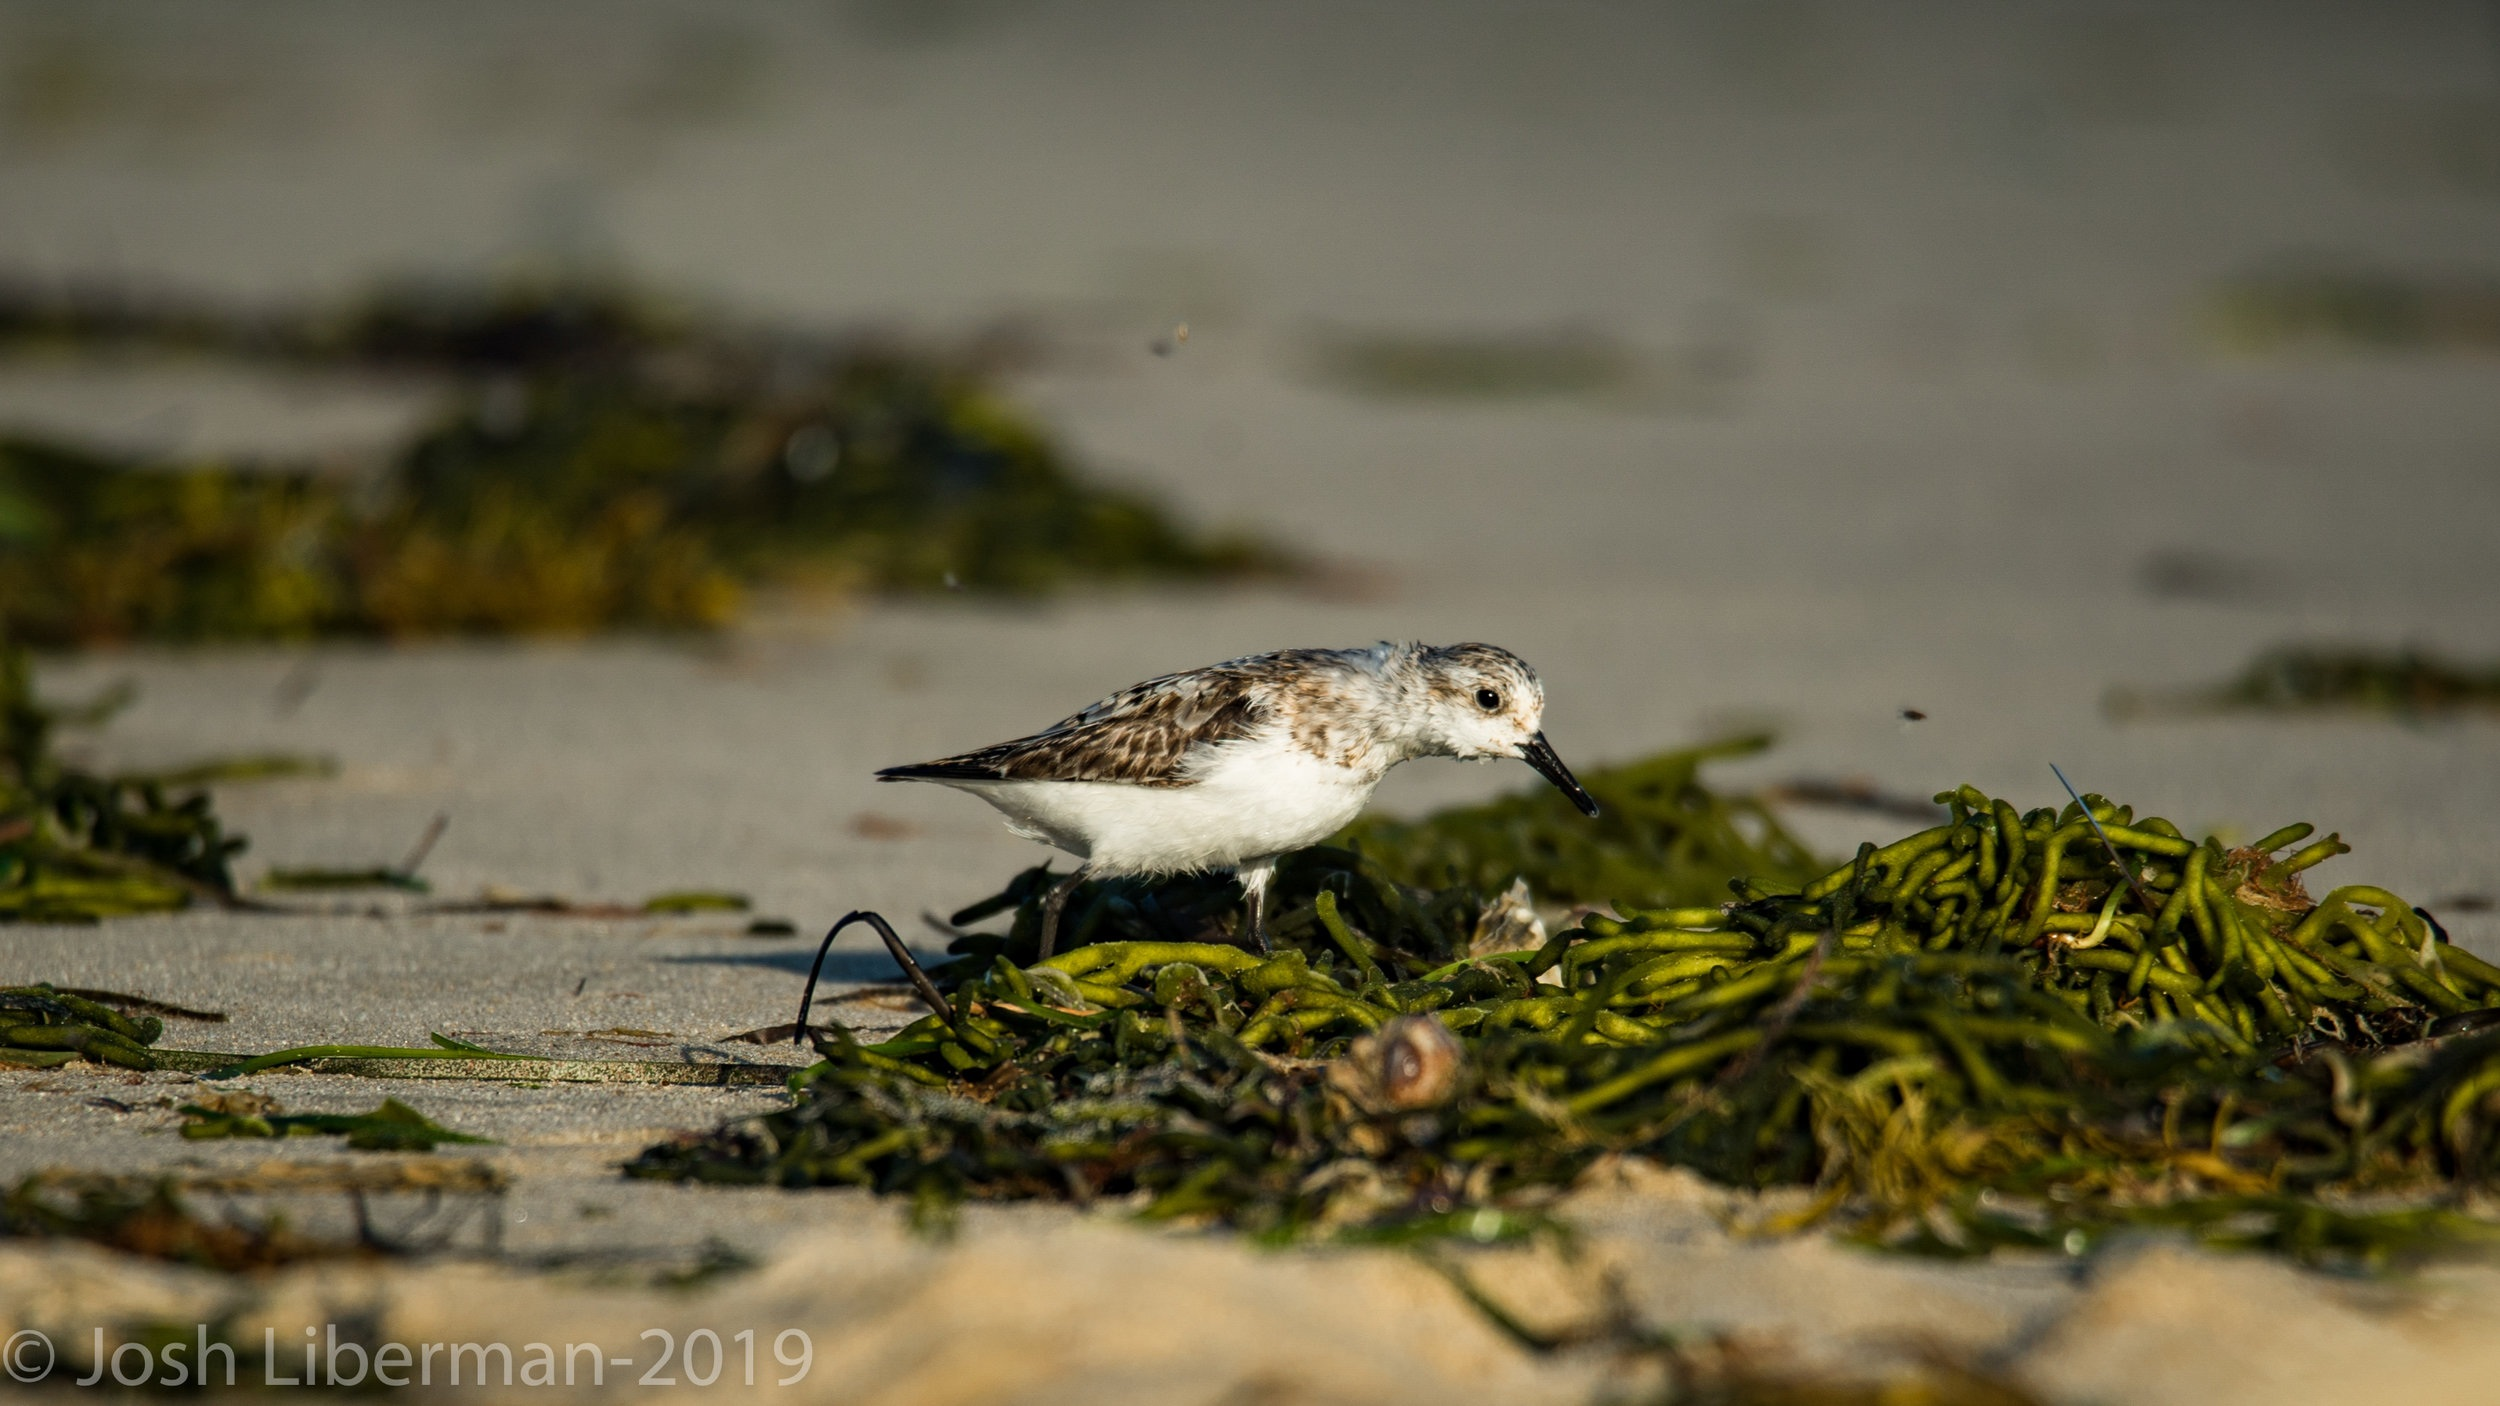 This sanderling is searching for crustaceans in some seaweed.